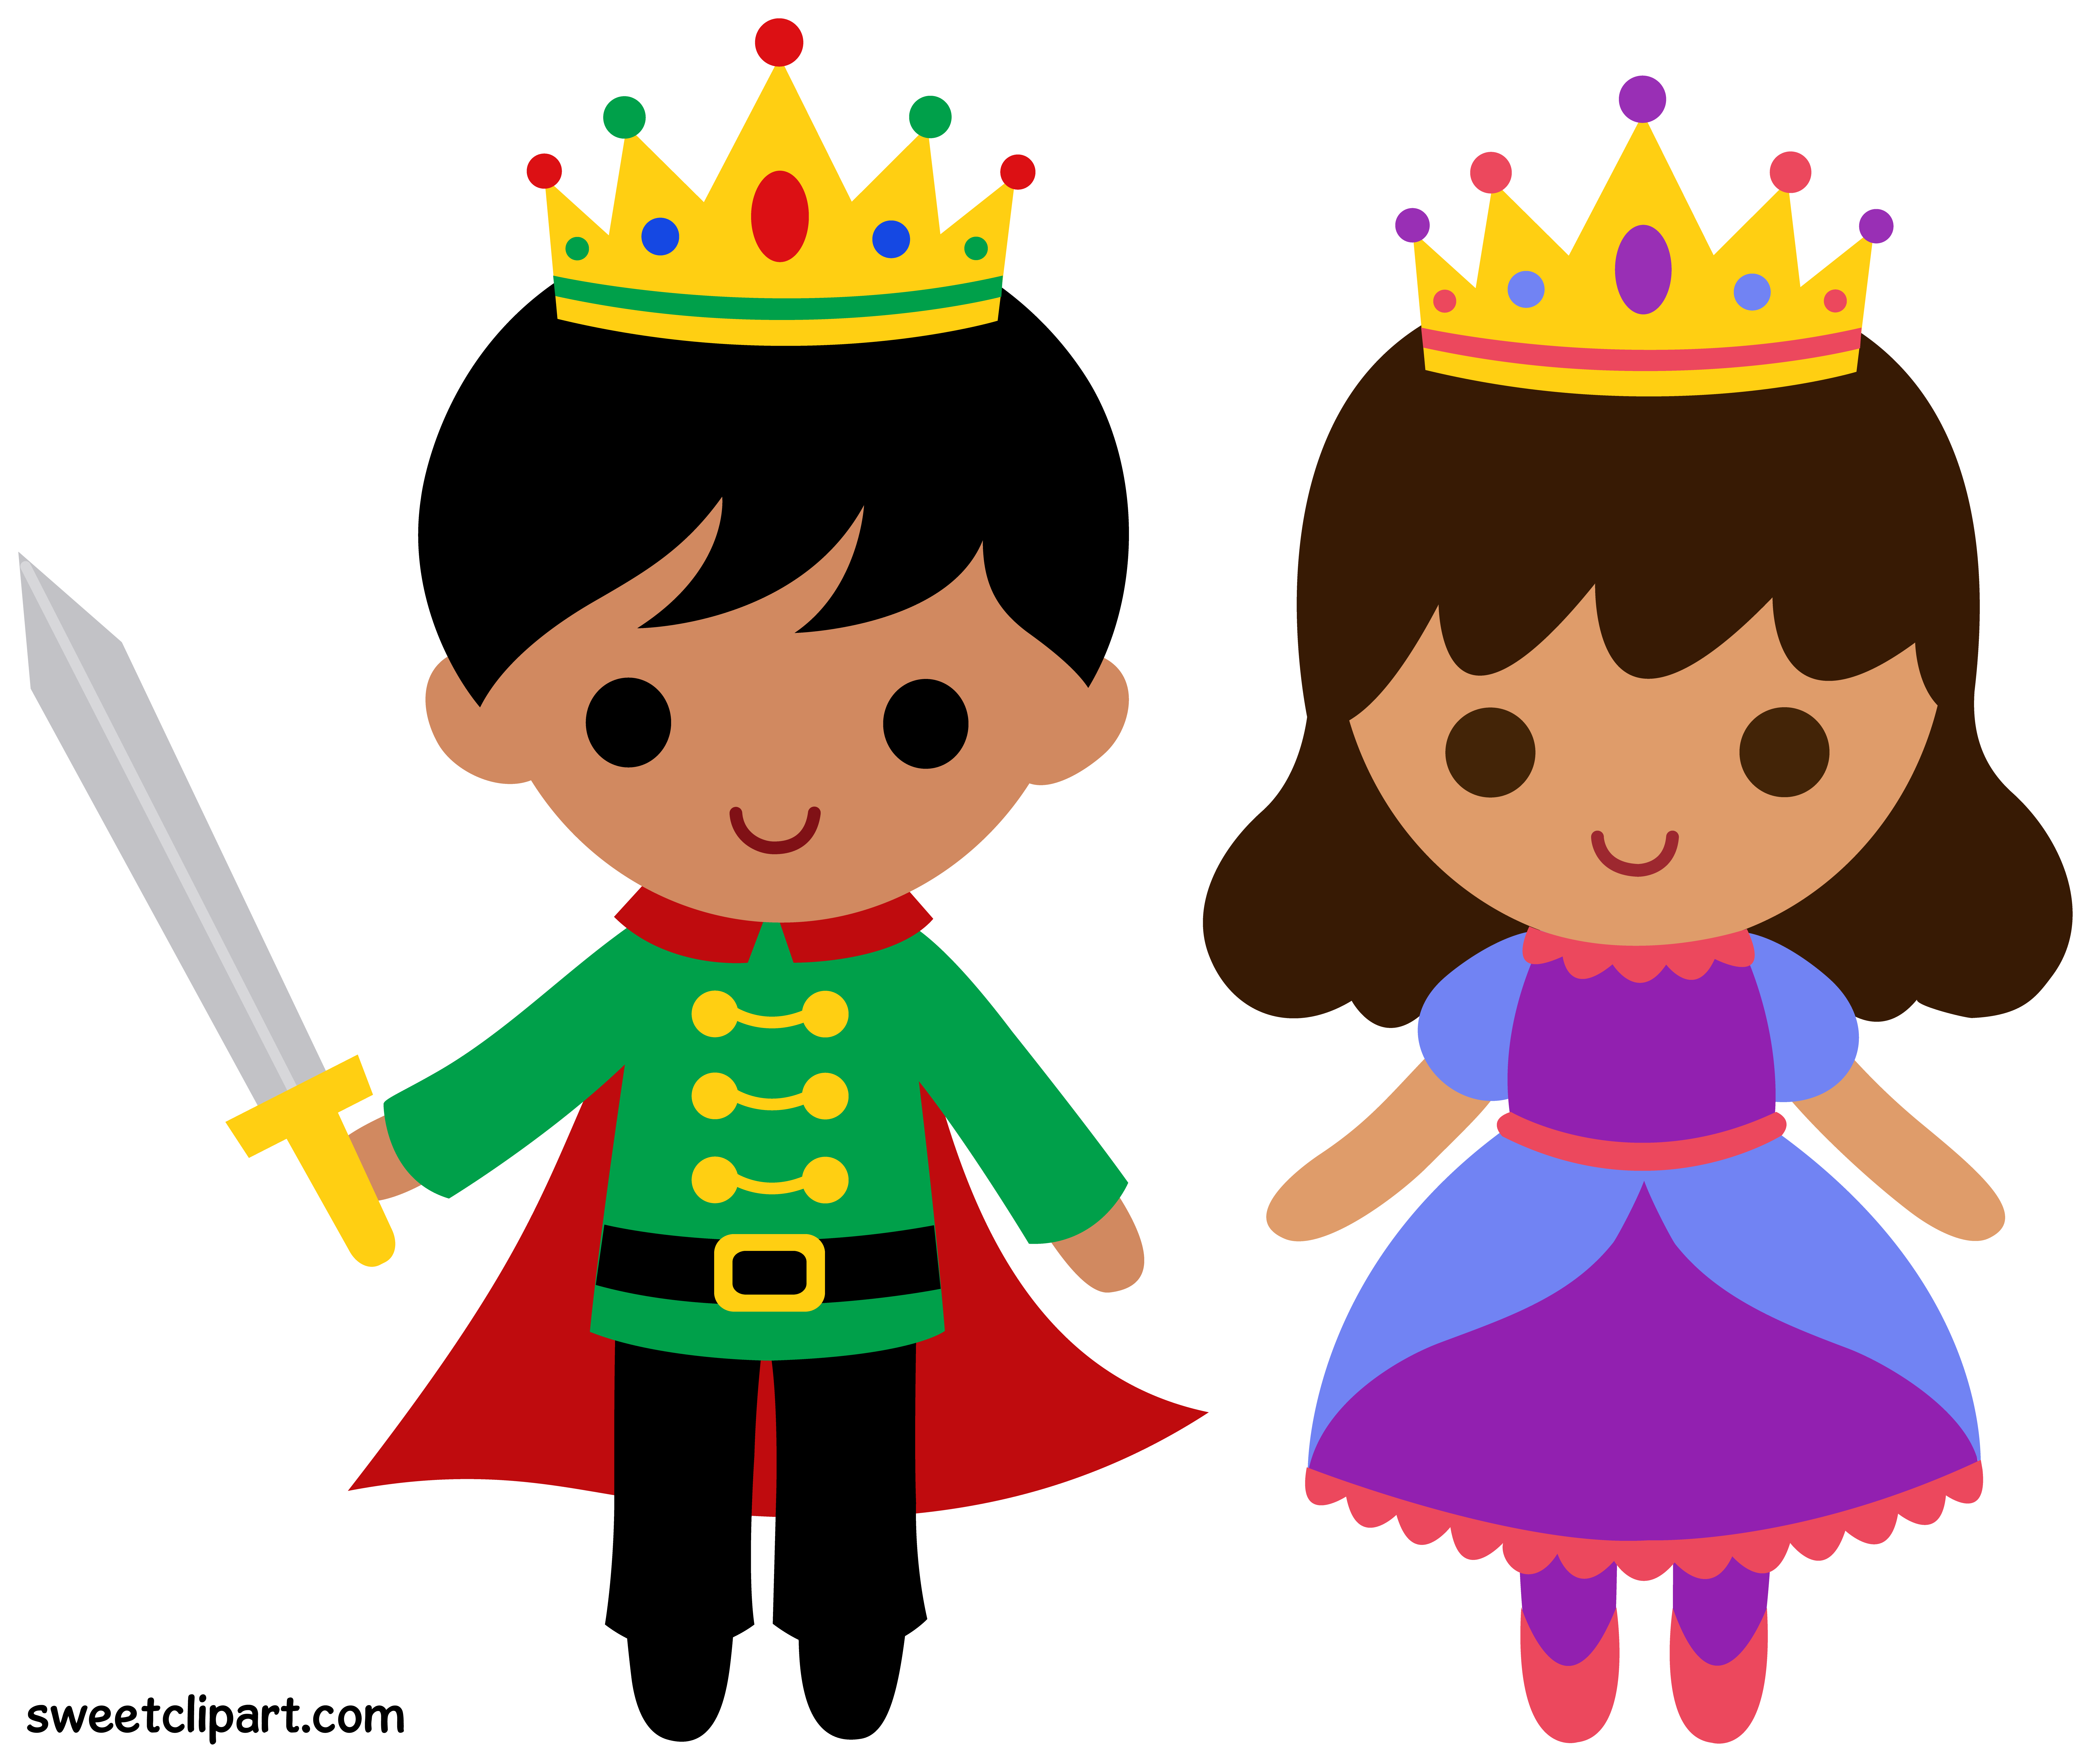 Prince and clip art. Princess clipart